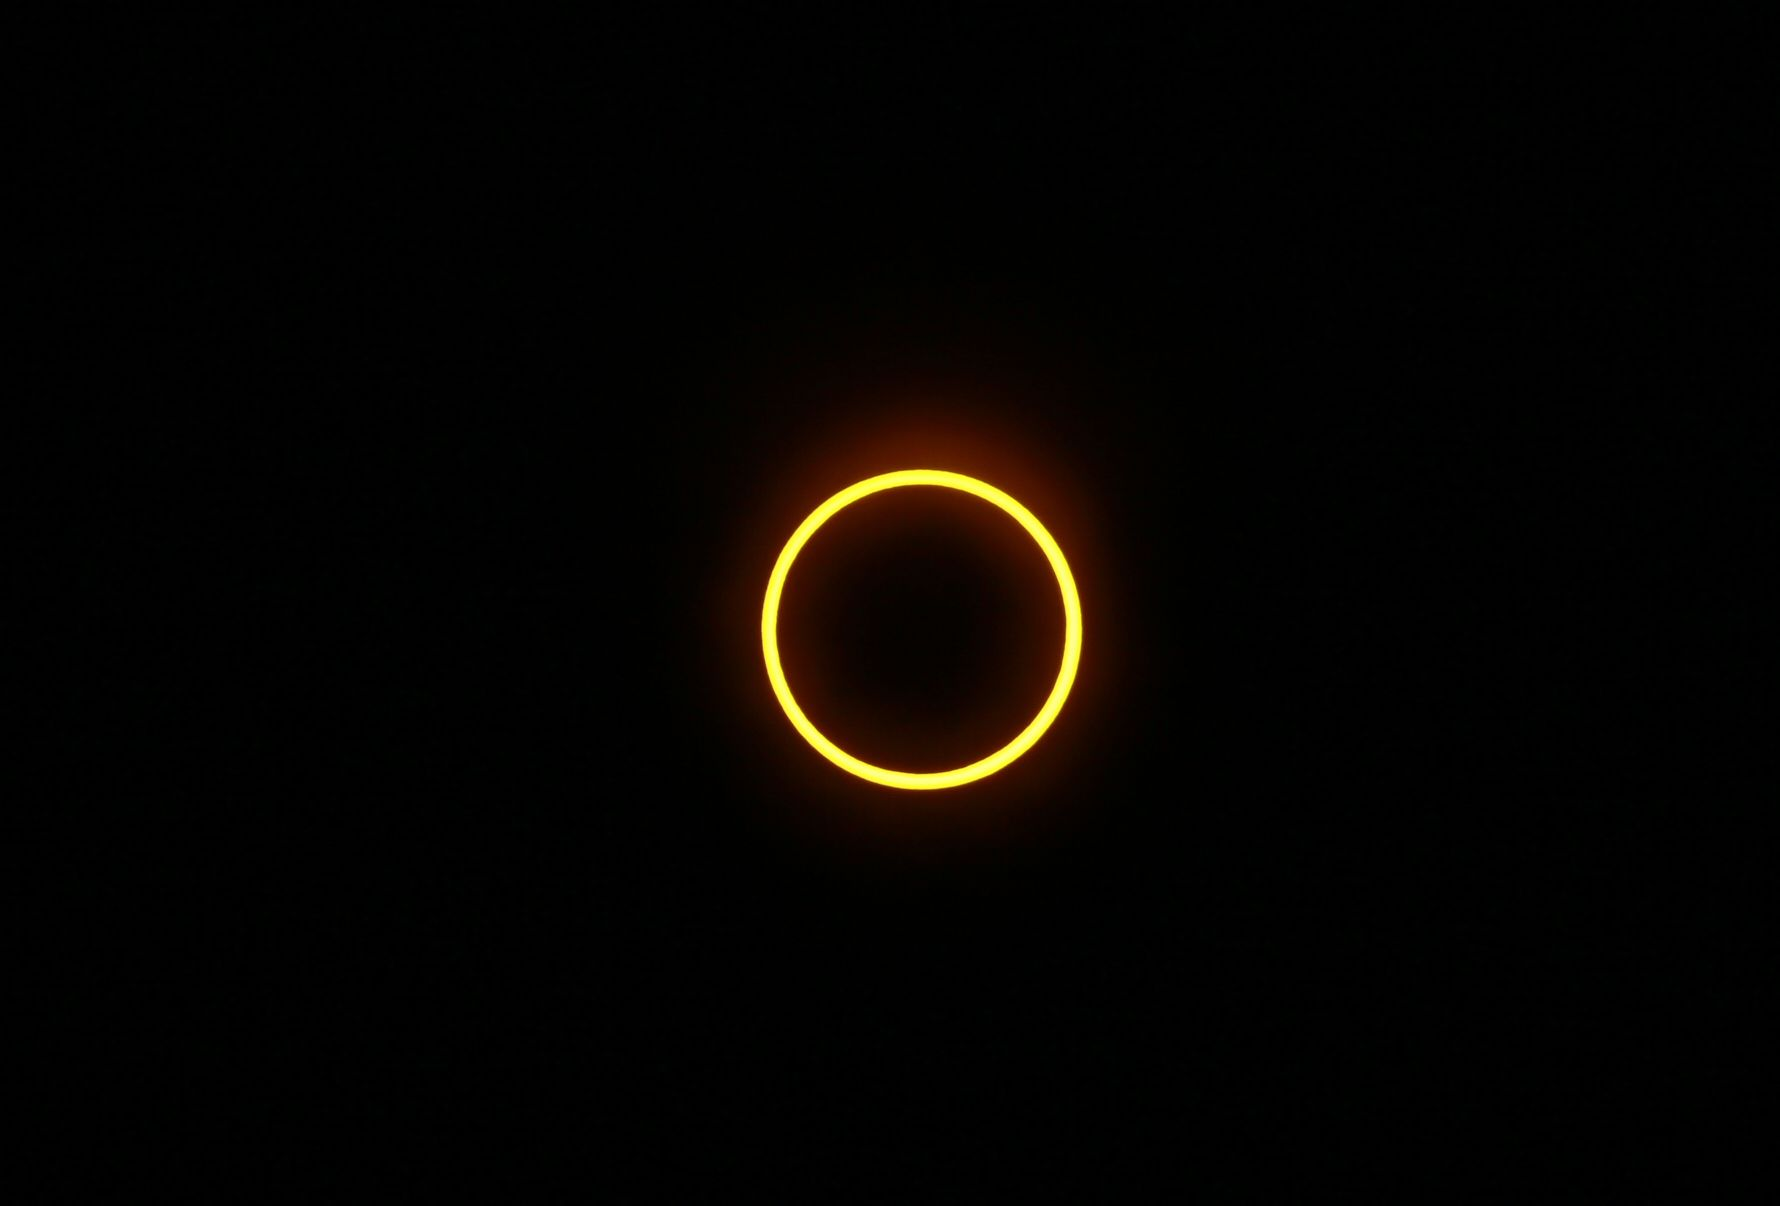 2013 Solar Eclipse Wallpapers